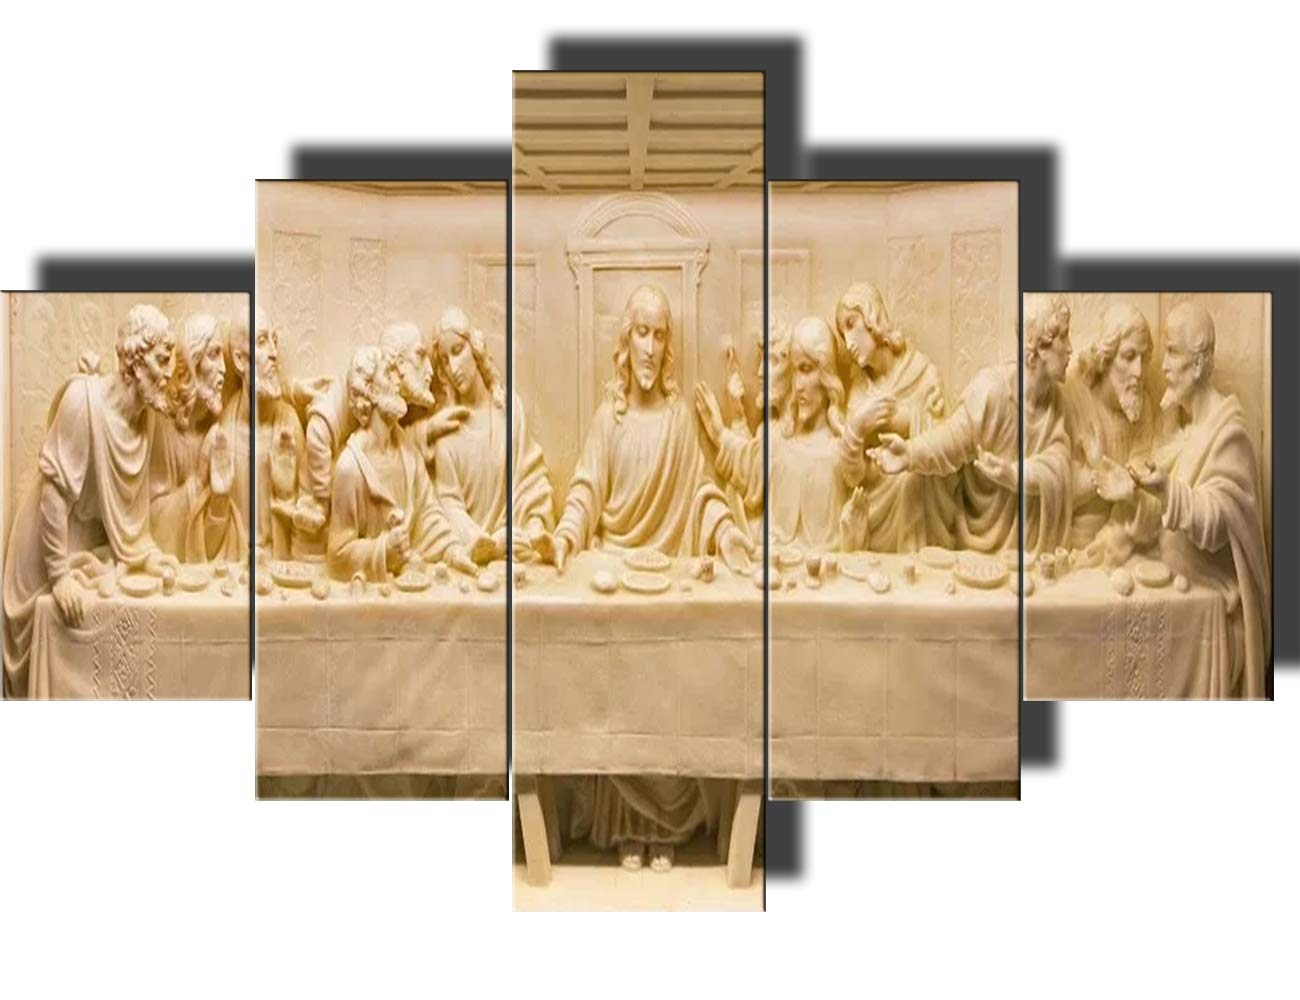 Amazon.com: Christian Pictures for Wall The Last Supper Wall Decor ...